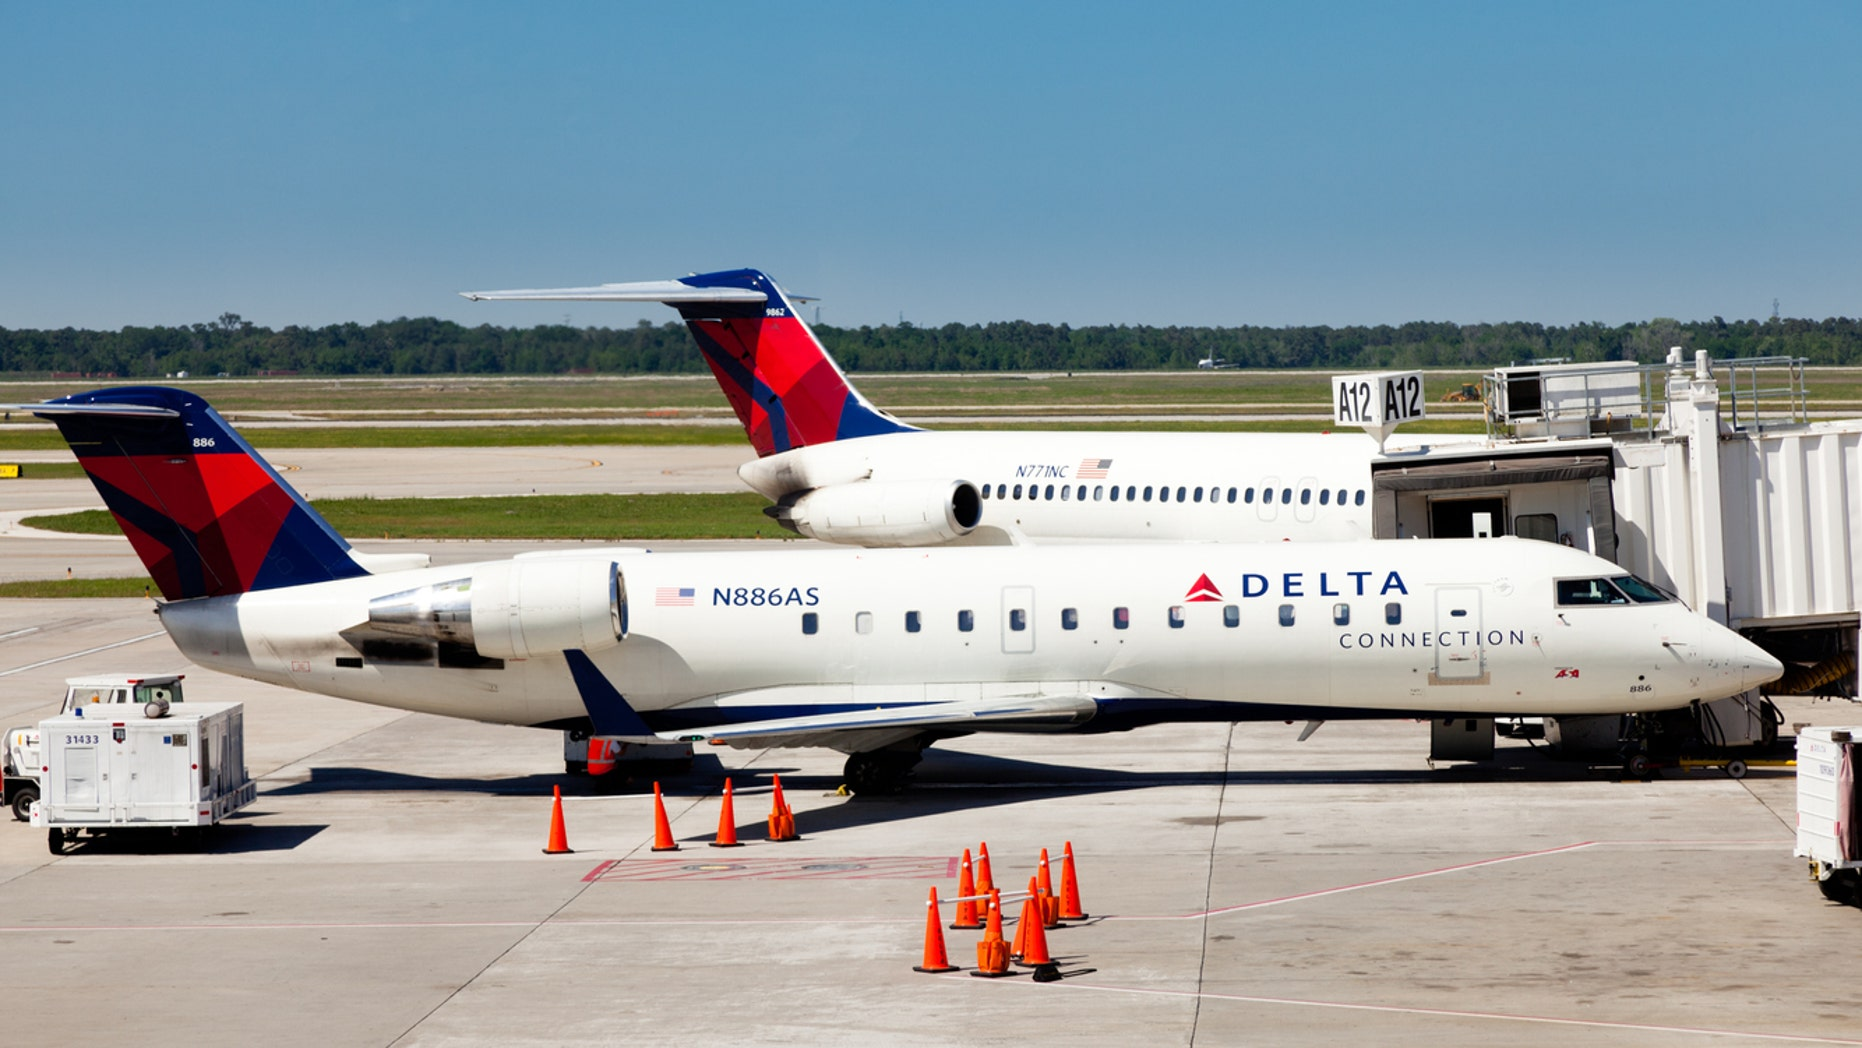 Delta has apologized for the incident.